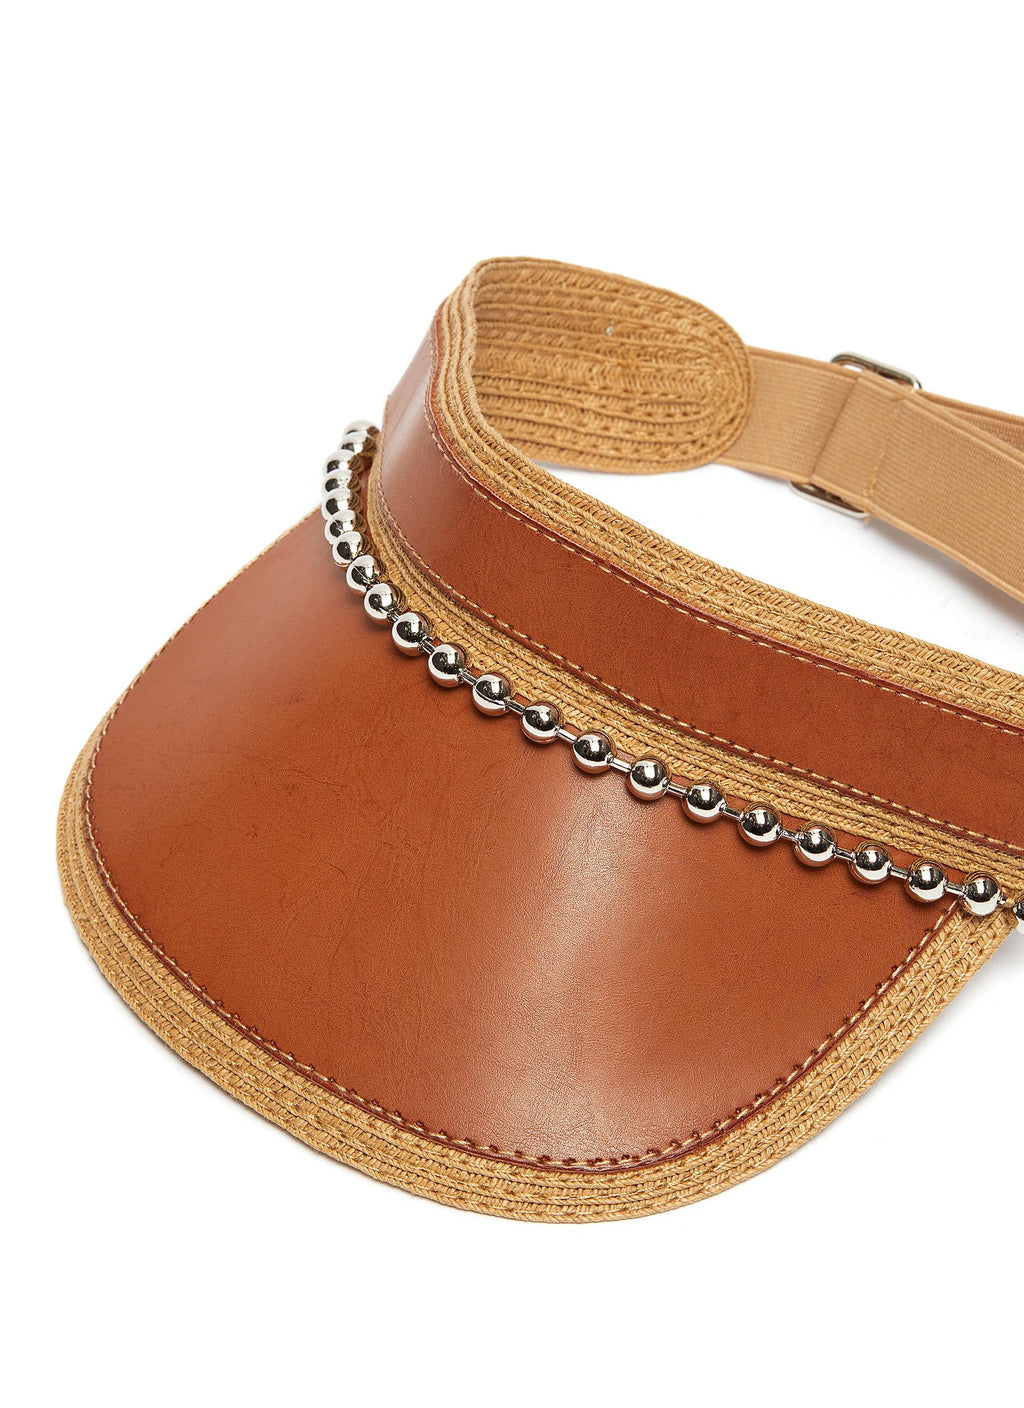 Ball chain leather and straw visor